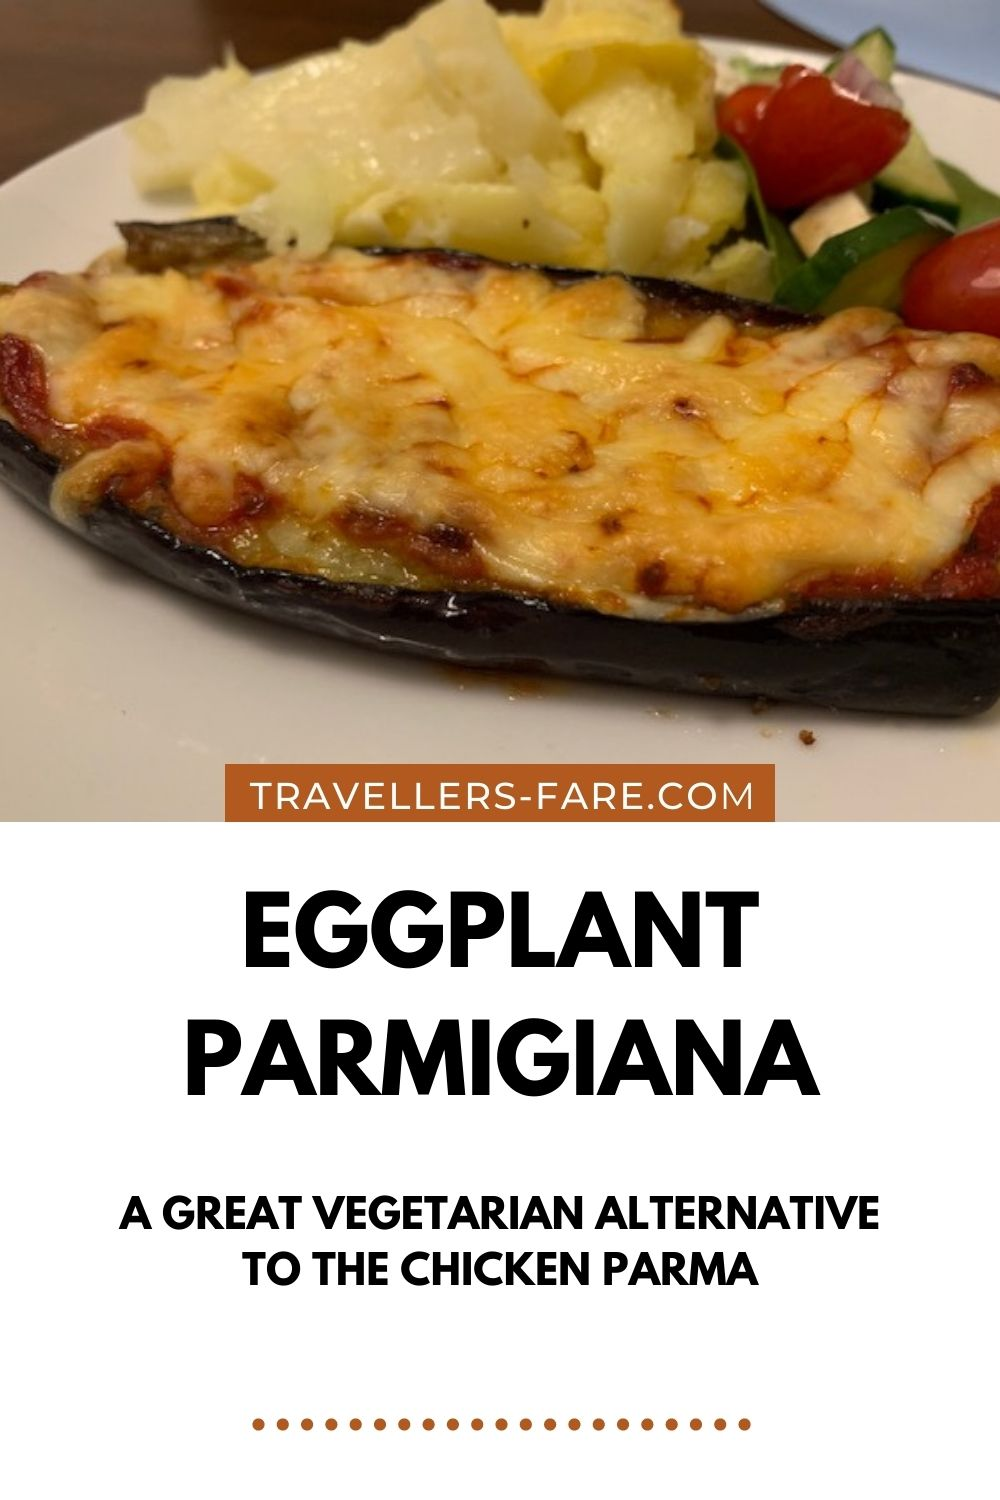 Eggplant Parmigiana (Parma) Is A Vegetarian Alternative To The Australian Classic Chicken Parma. Made From Eggplant, Tomato Sauce And Cheese.